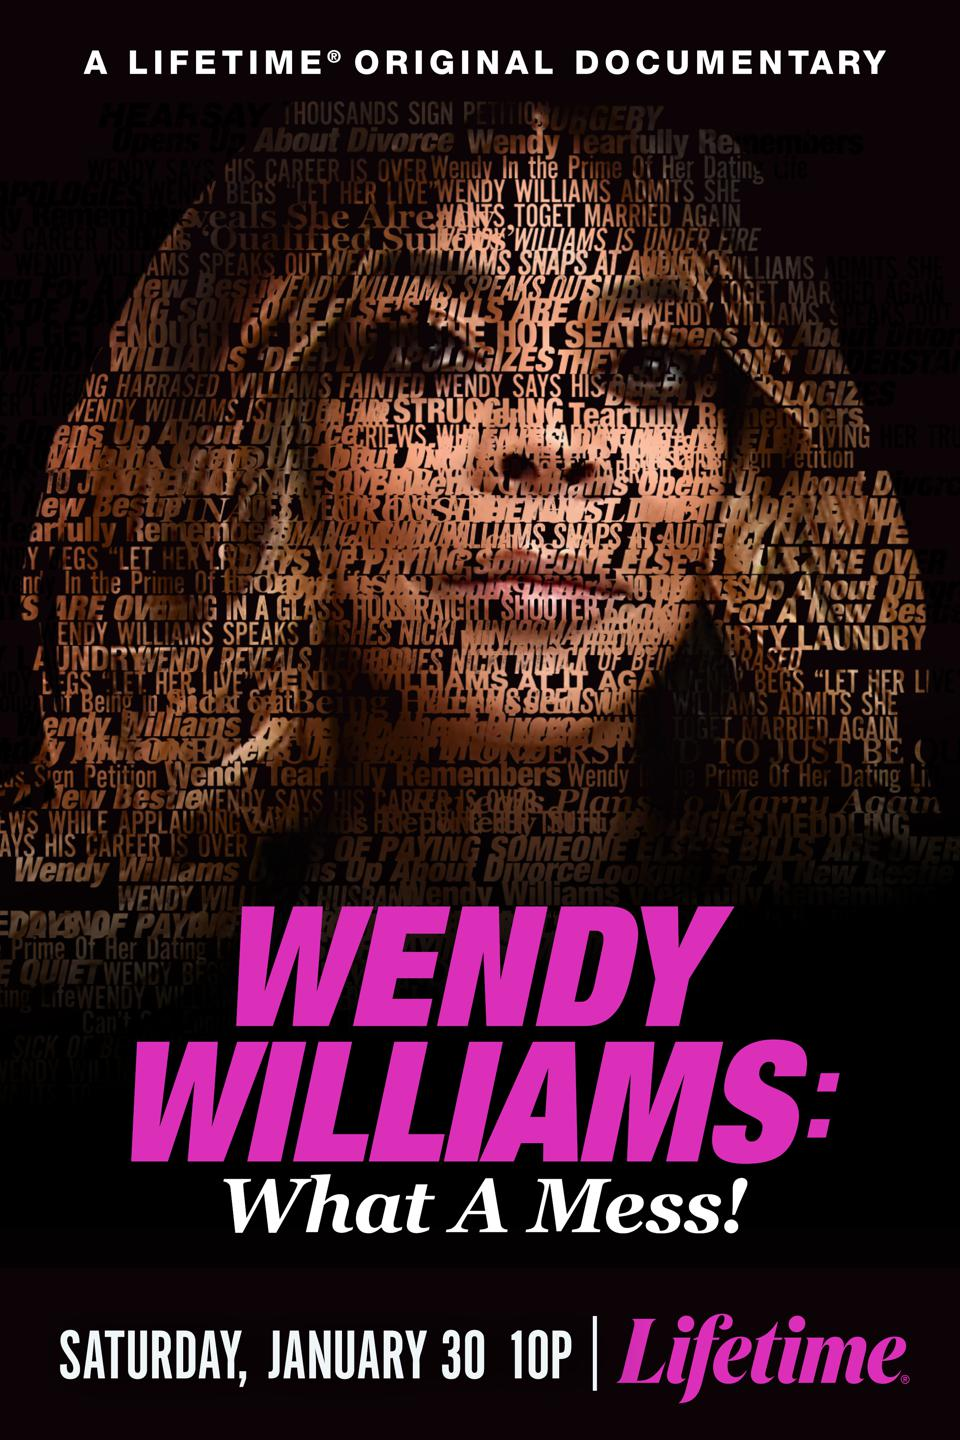 wendy williams tv documentary